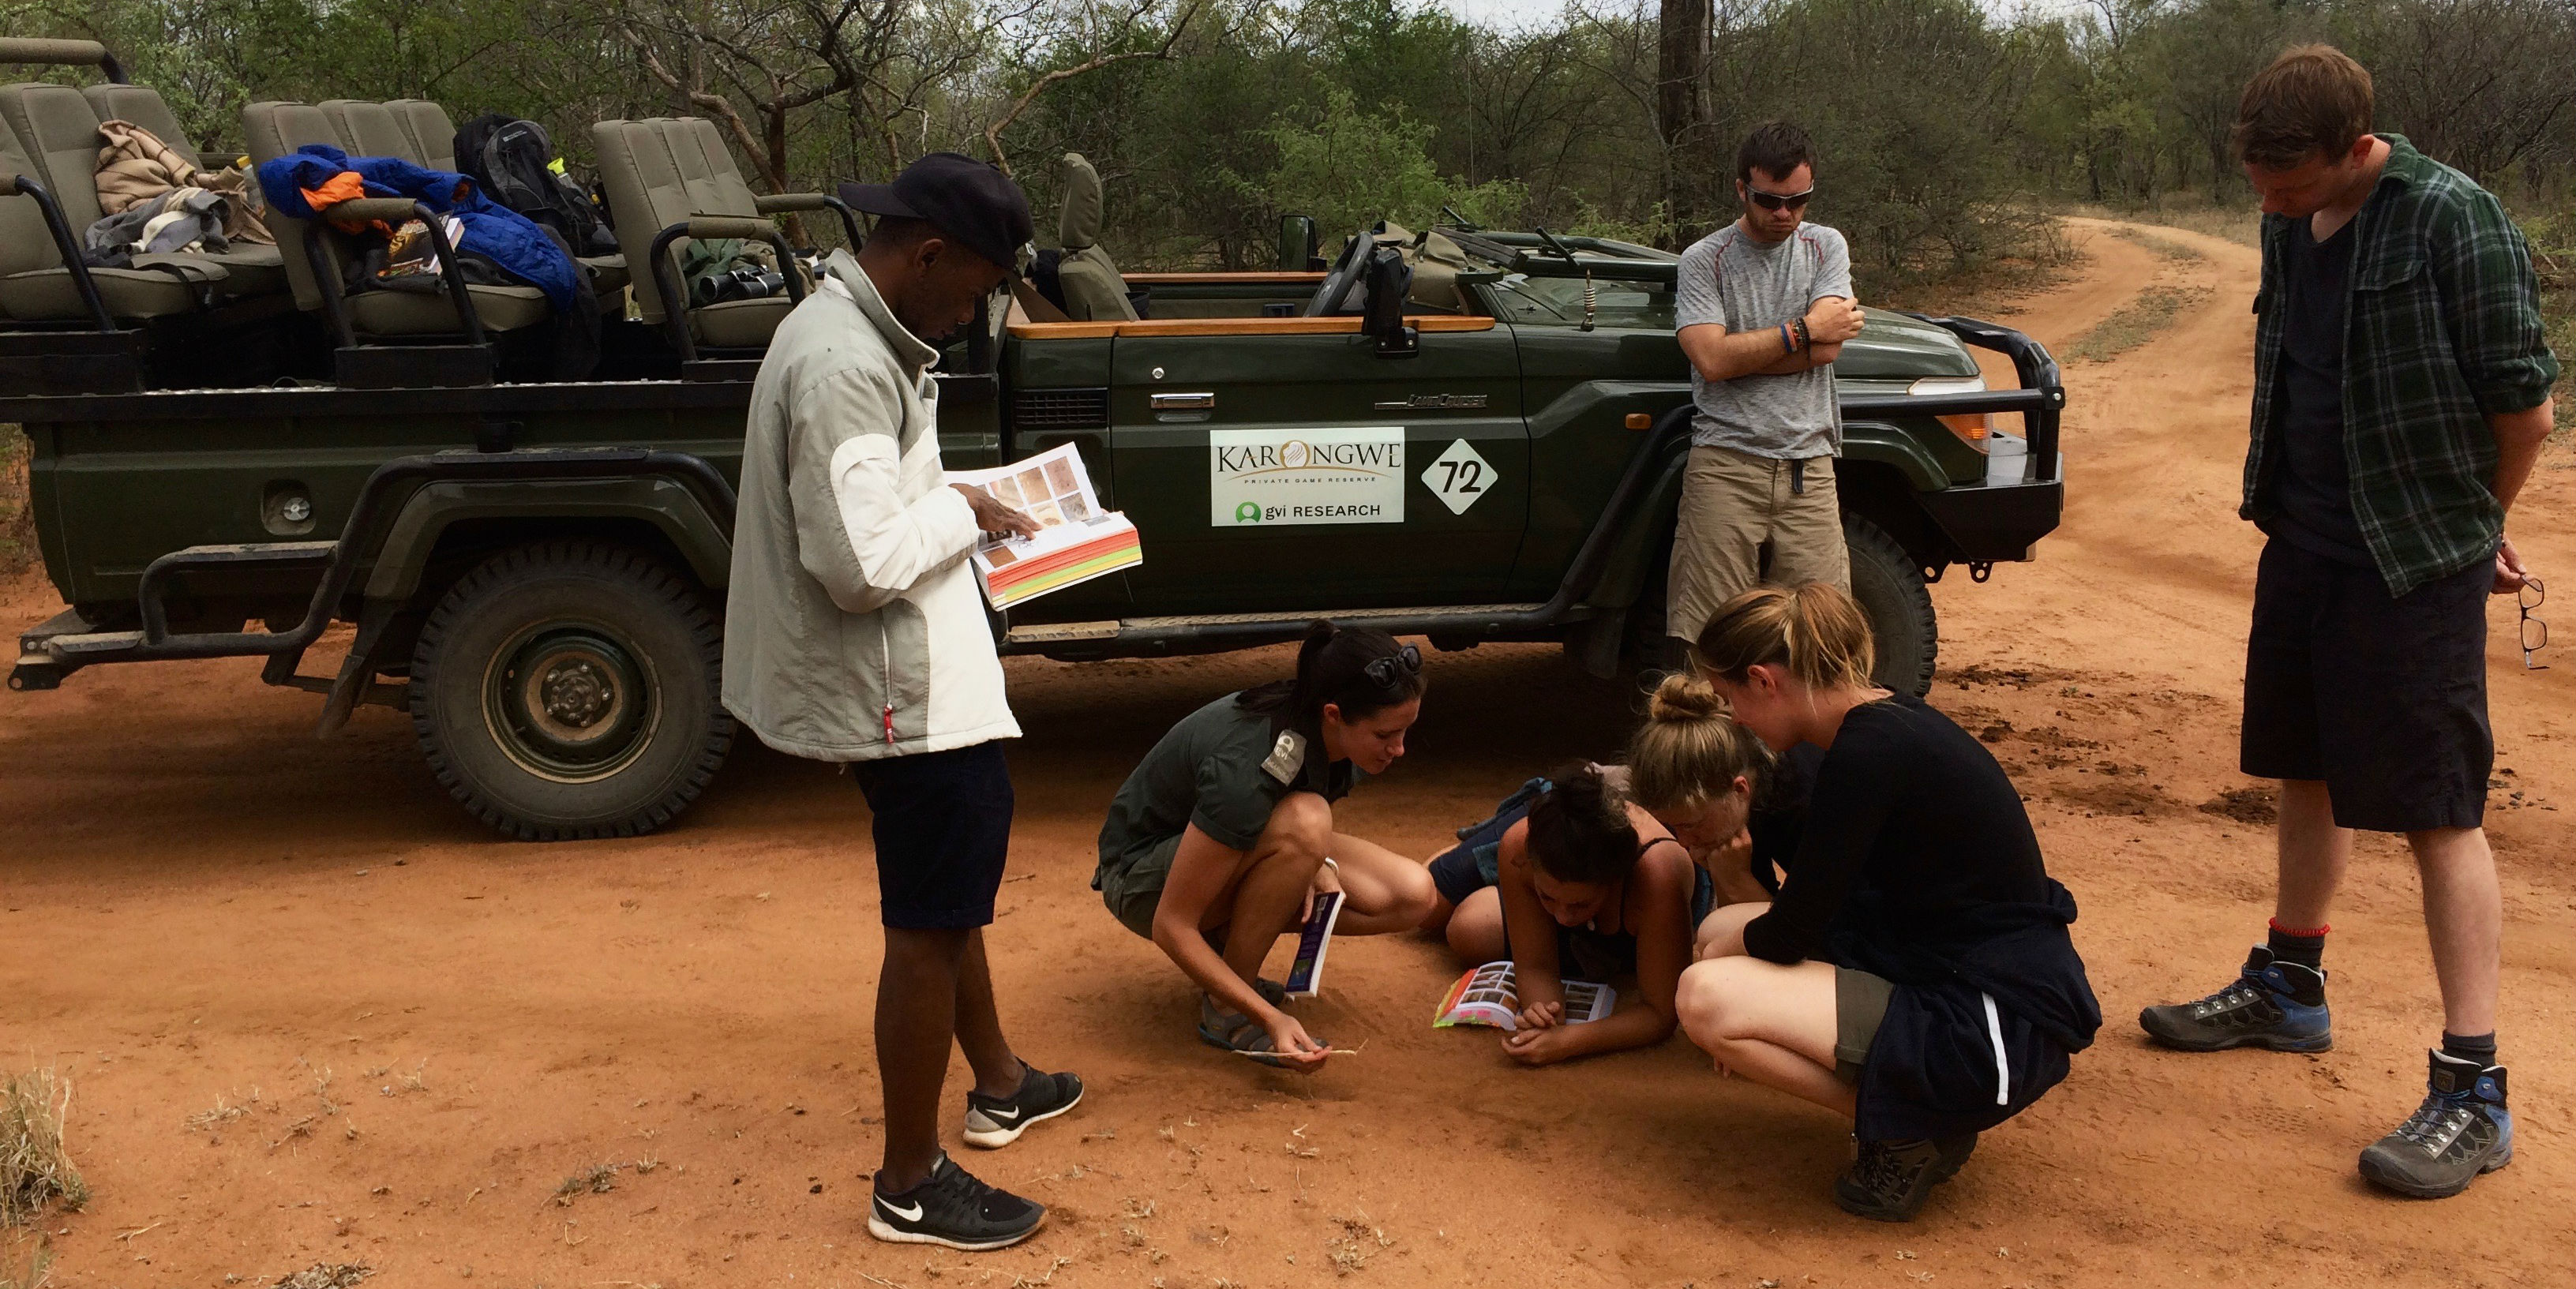 GVI participants learn to identify animal tracks while in South Africa on a breakers careers.